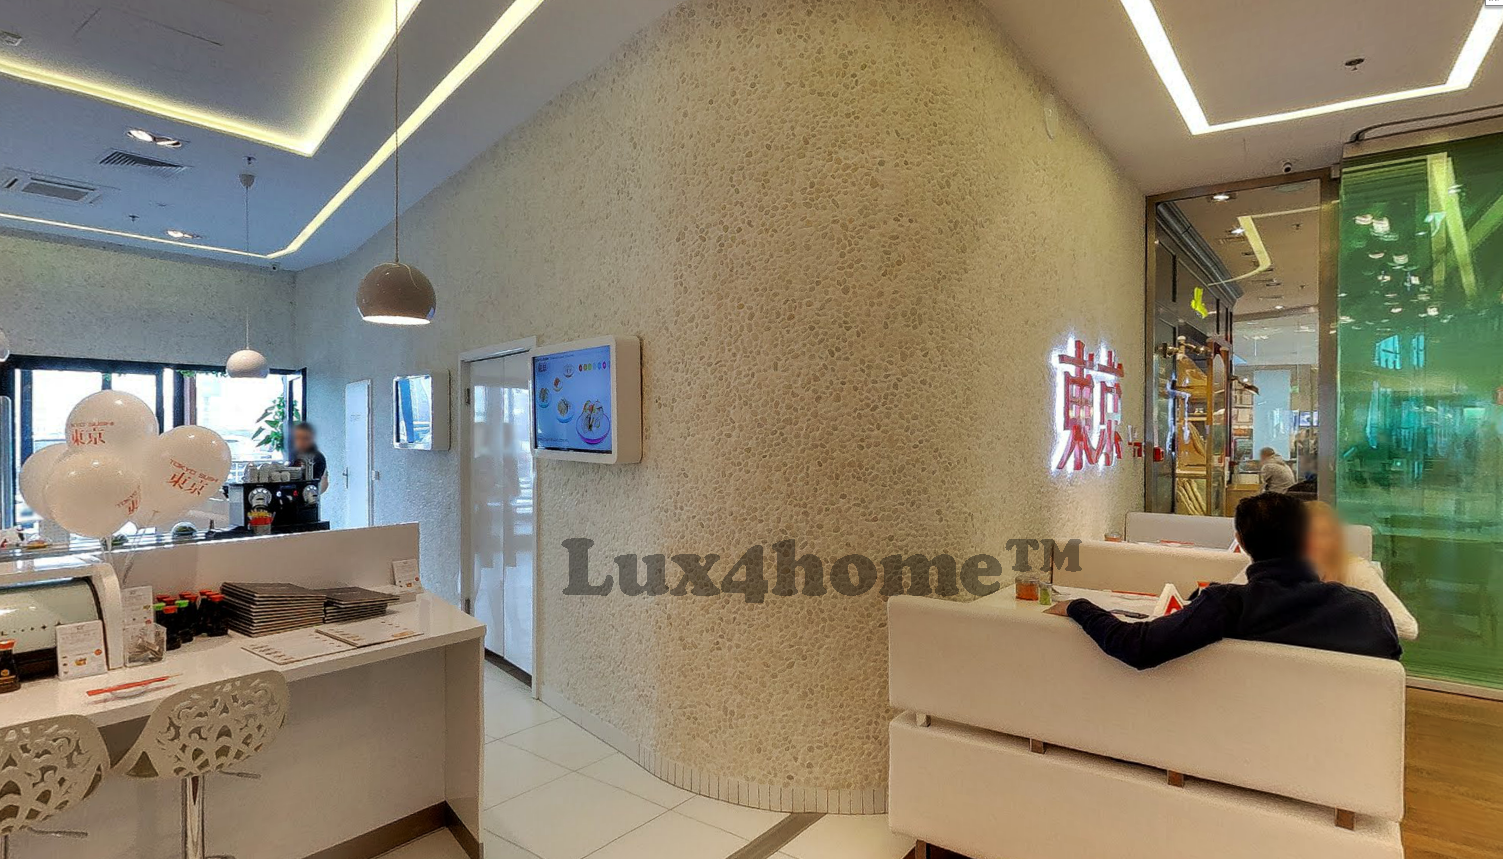 pebble-walls-Lux4home (1)